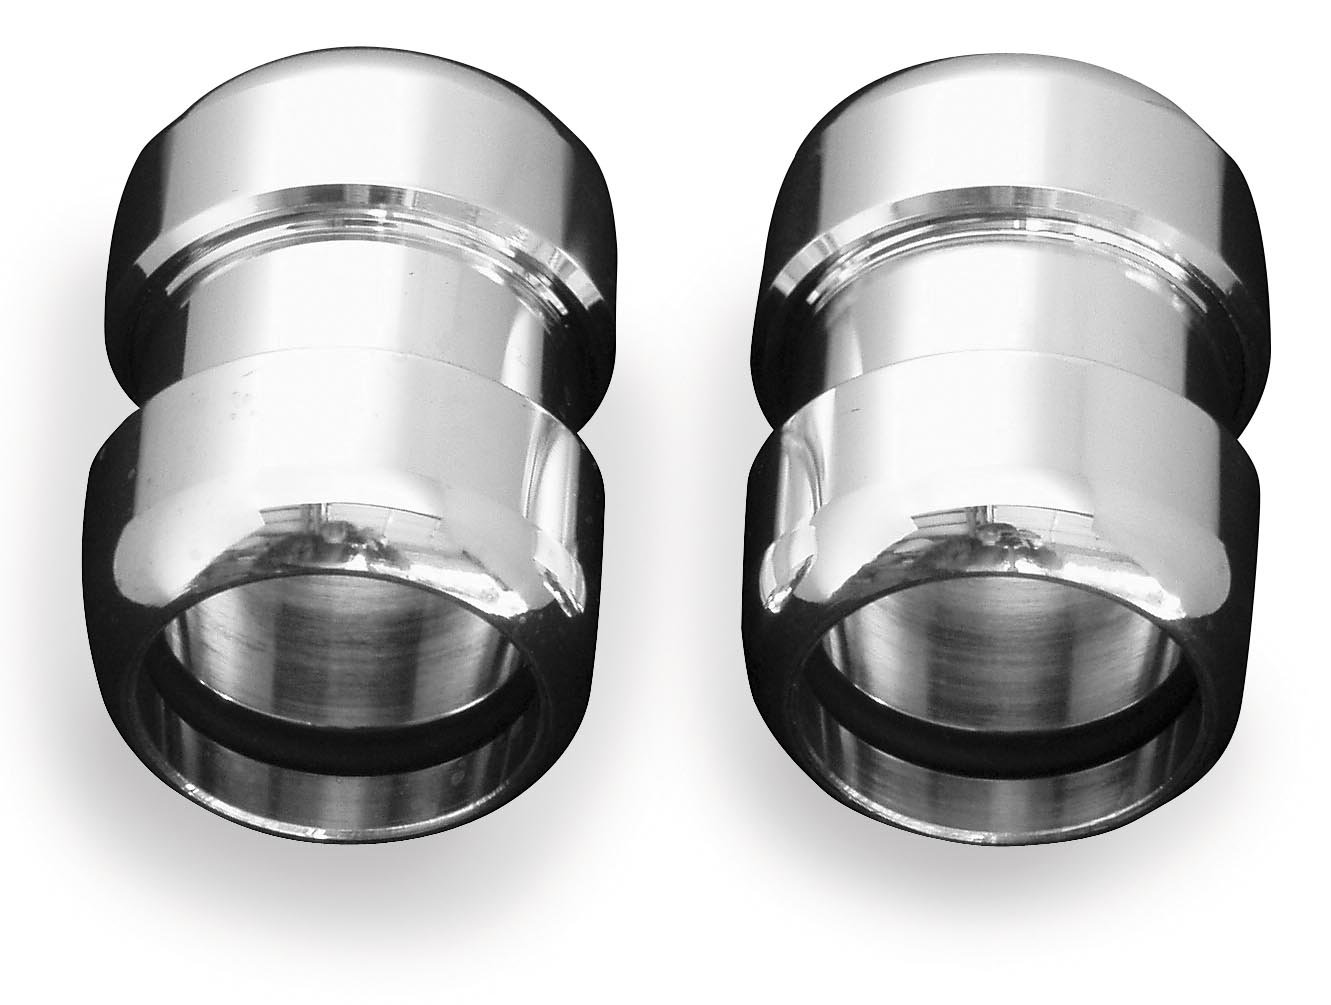 Modquad Exhaust Clamps Toomey CPI Pipes for Yamaha Banshee